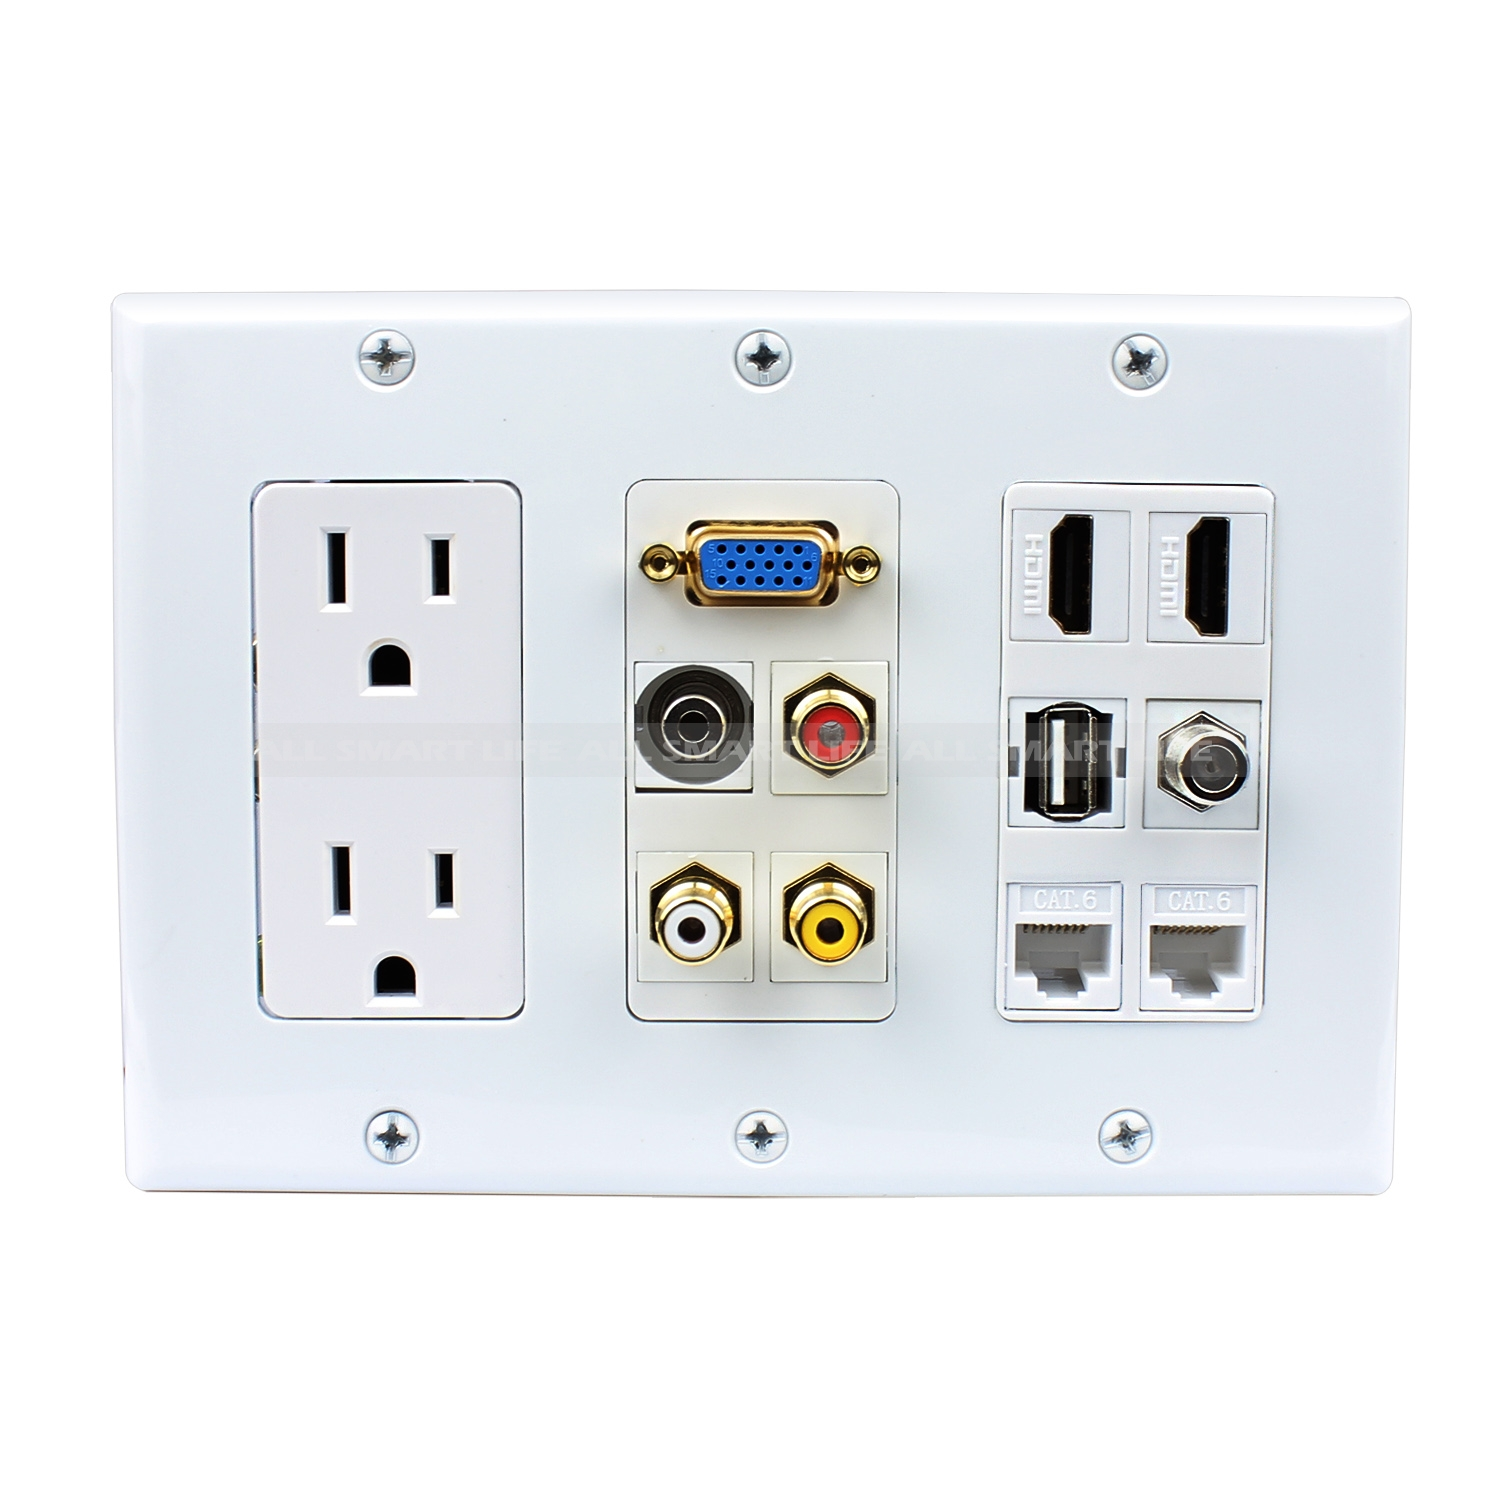 Multipurpose Design 2x Power Outlet Hdmi 1x Usb 3x Rca Cat6 Wiring Wall Plate Home Plates Custom 35mm 1xvga 1xf Type